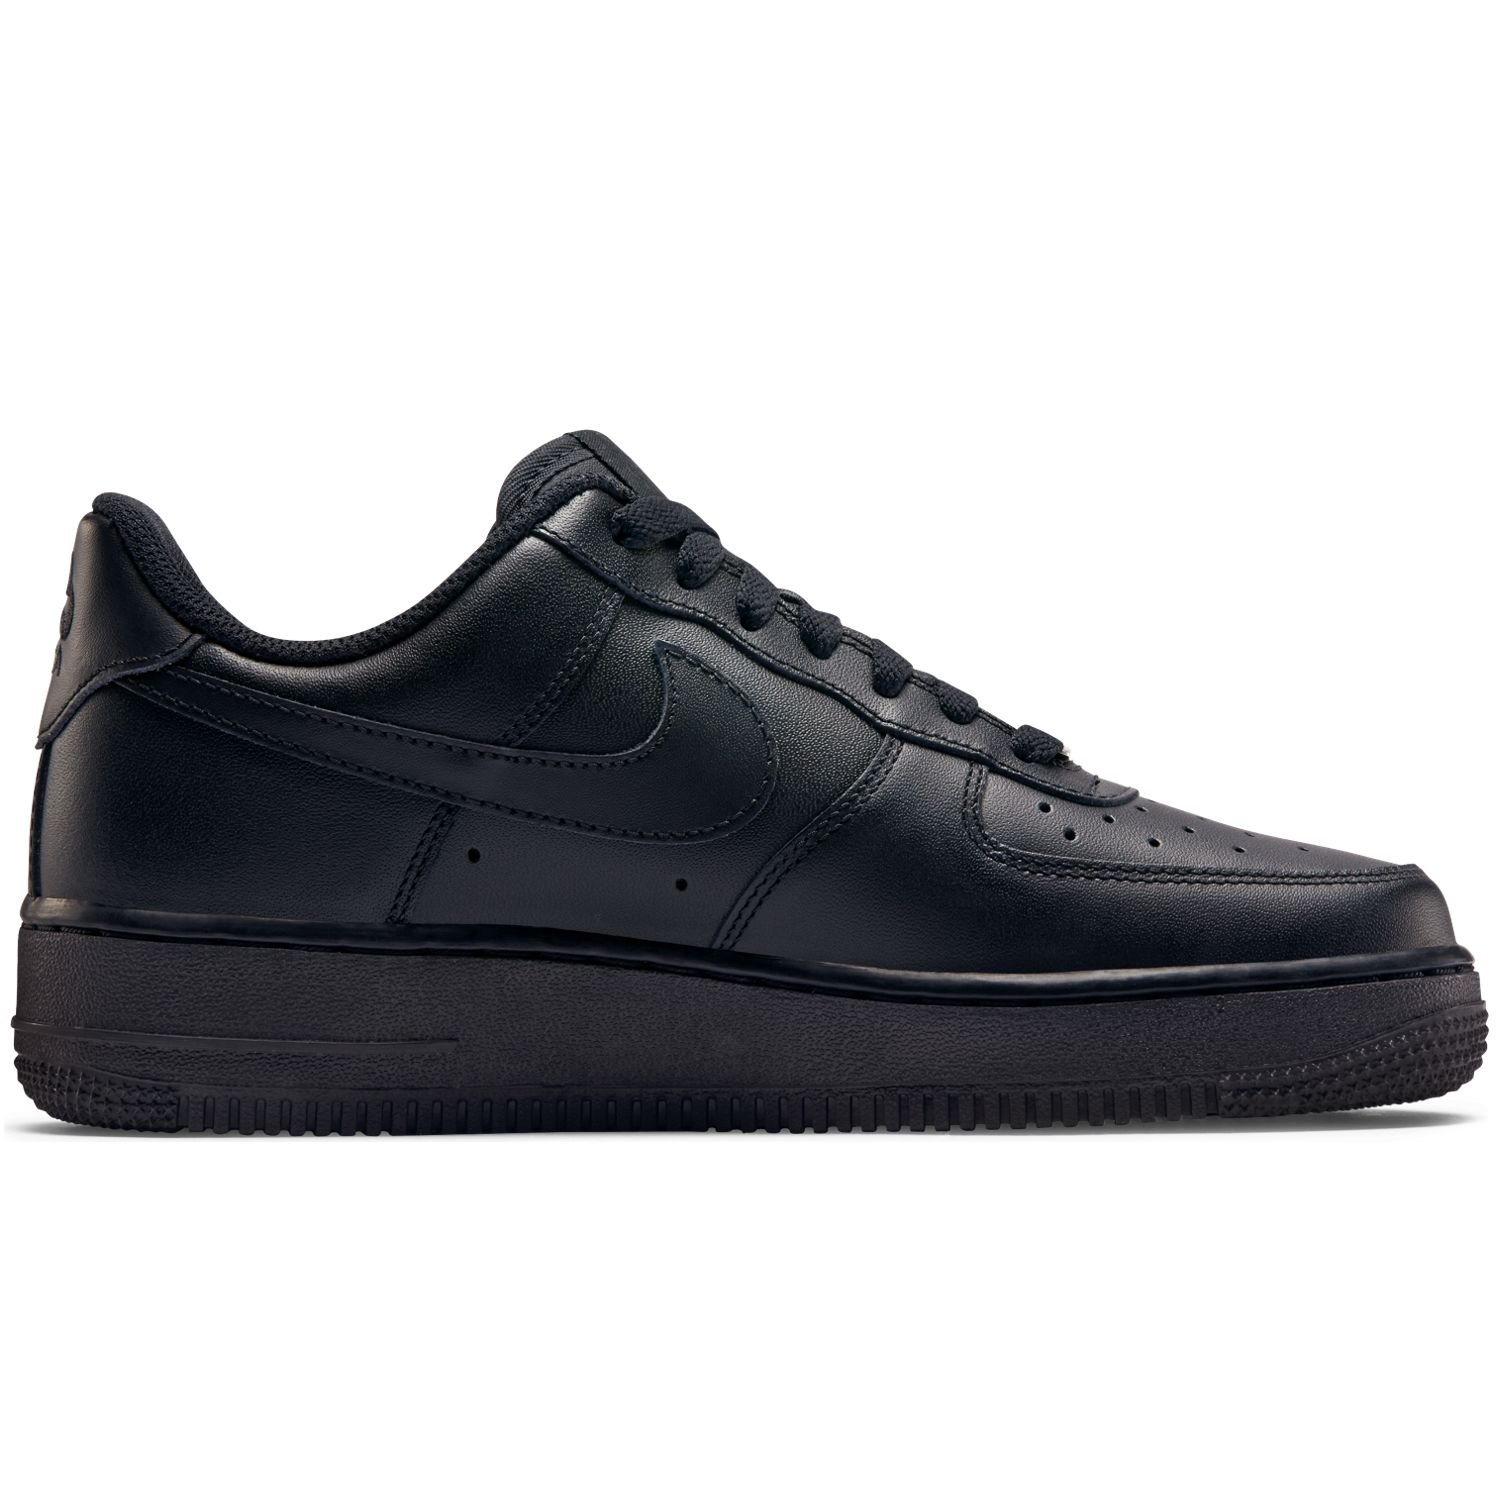 Buty Nike WMNS Air Force 1 '07 315115 038 w ButSklep.pl